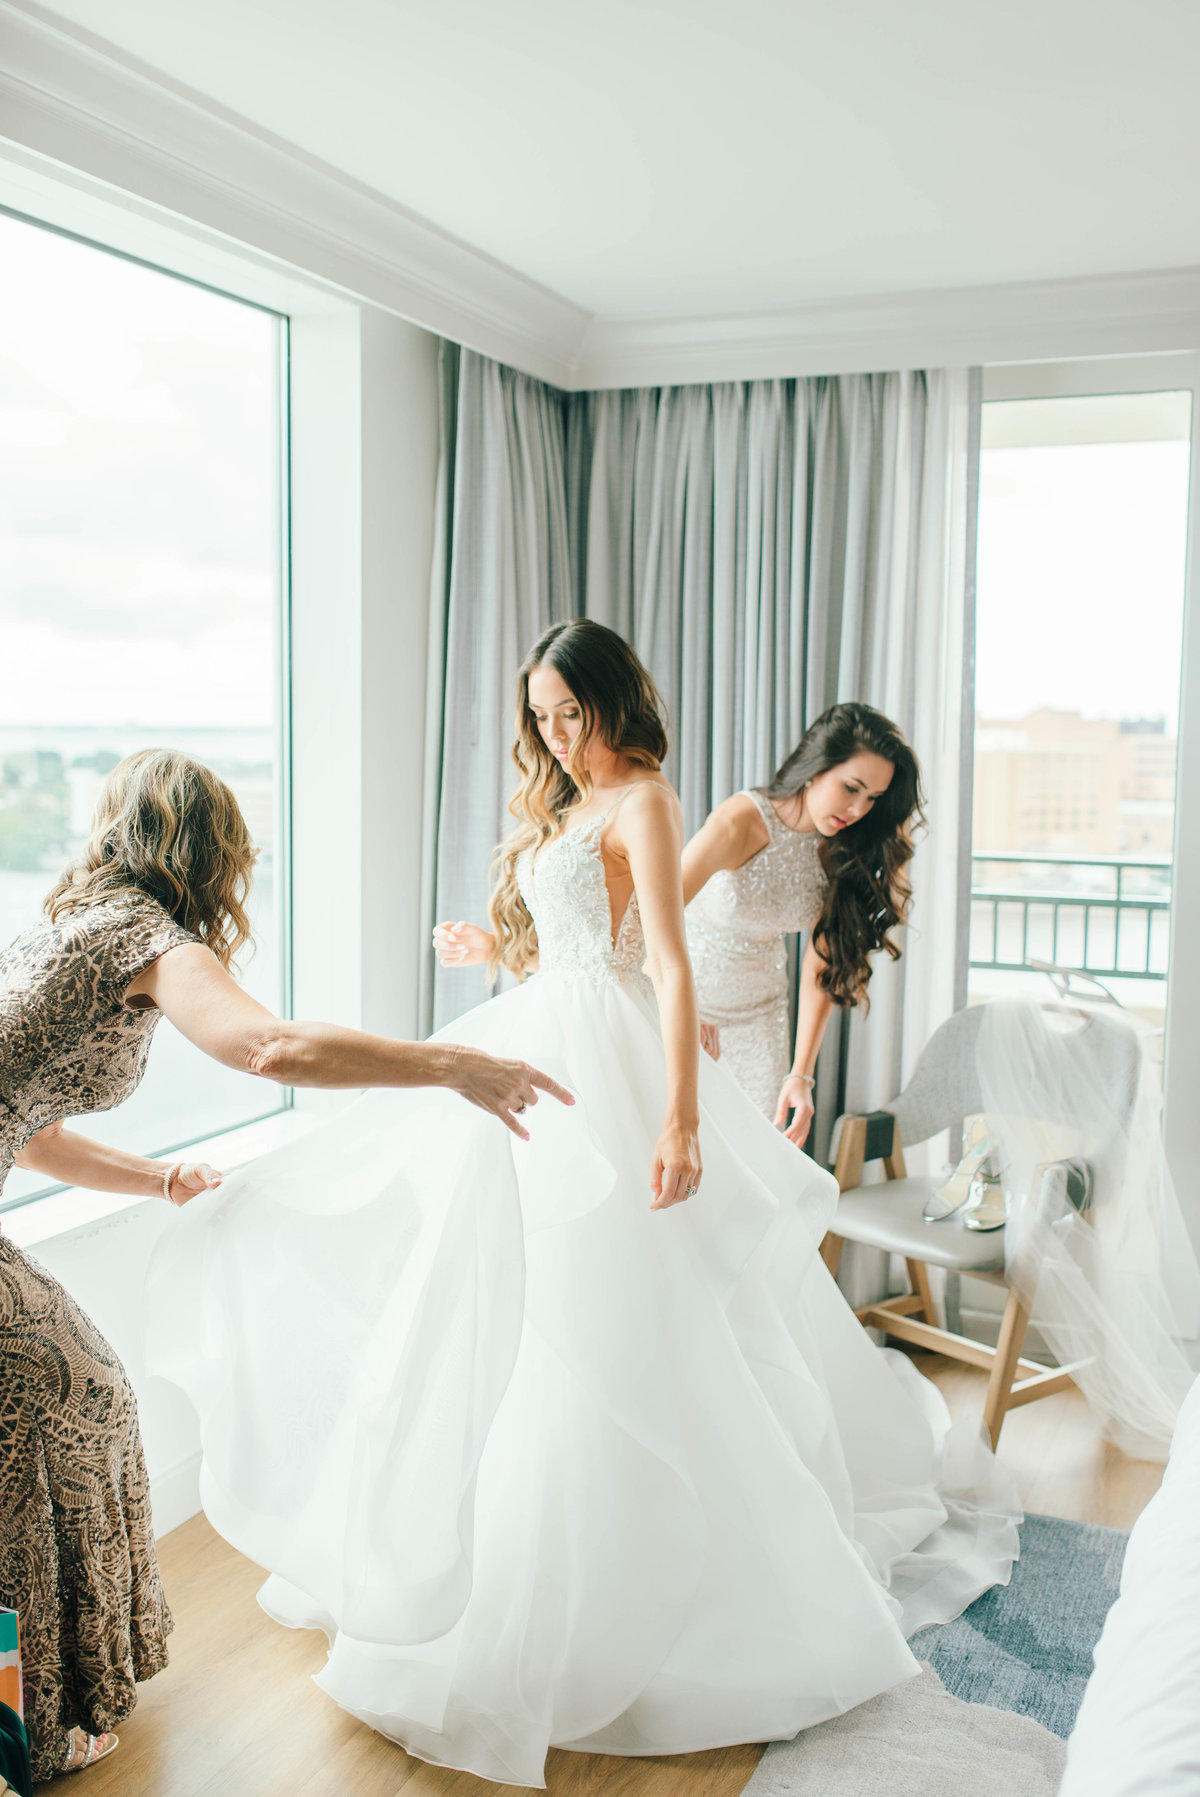 Mother of the bride and sister of the bride helping with brides wedding dress